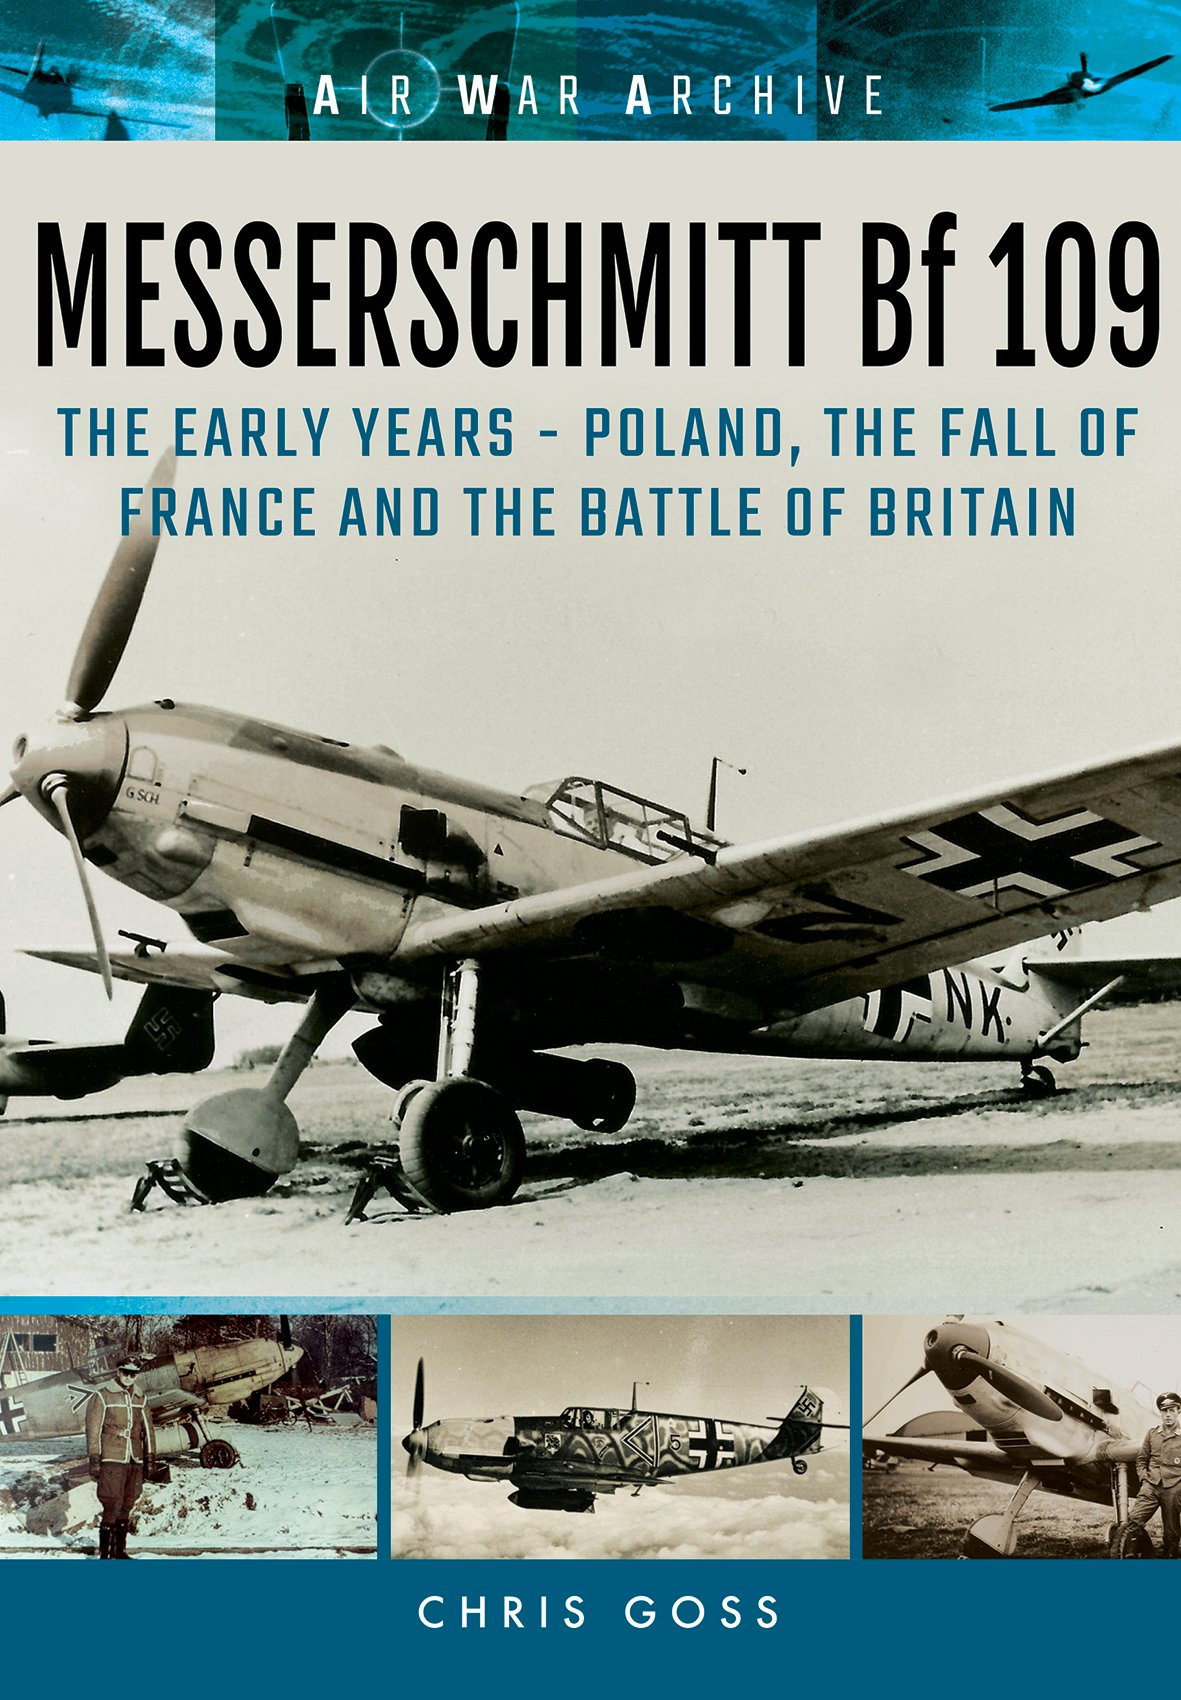 Read Online Messerschmitt Bf 109: The Early Years: Poland, the Fall of France and the Battle of Britain (Air War Archive) pdf